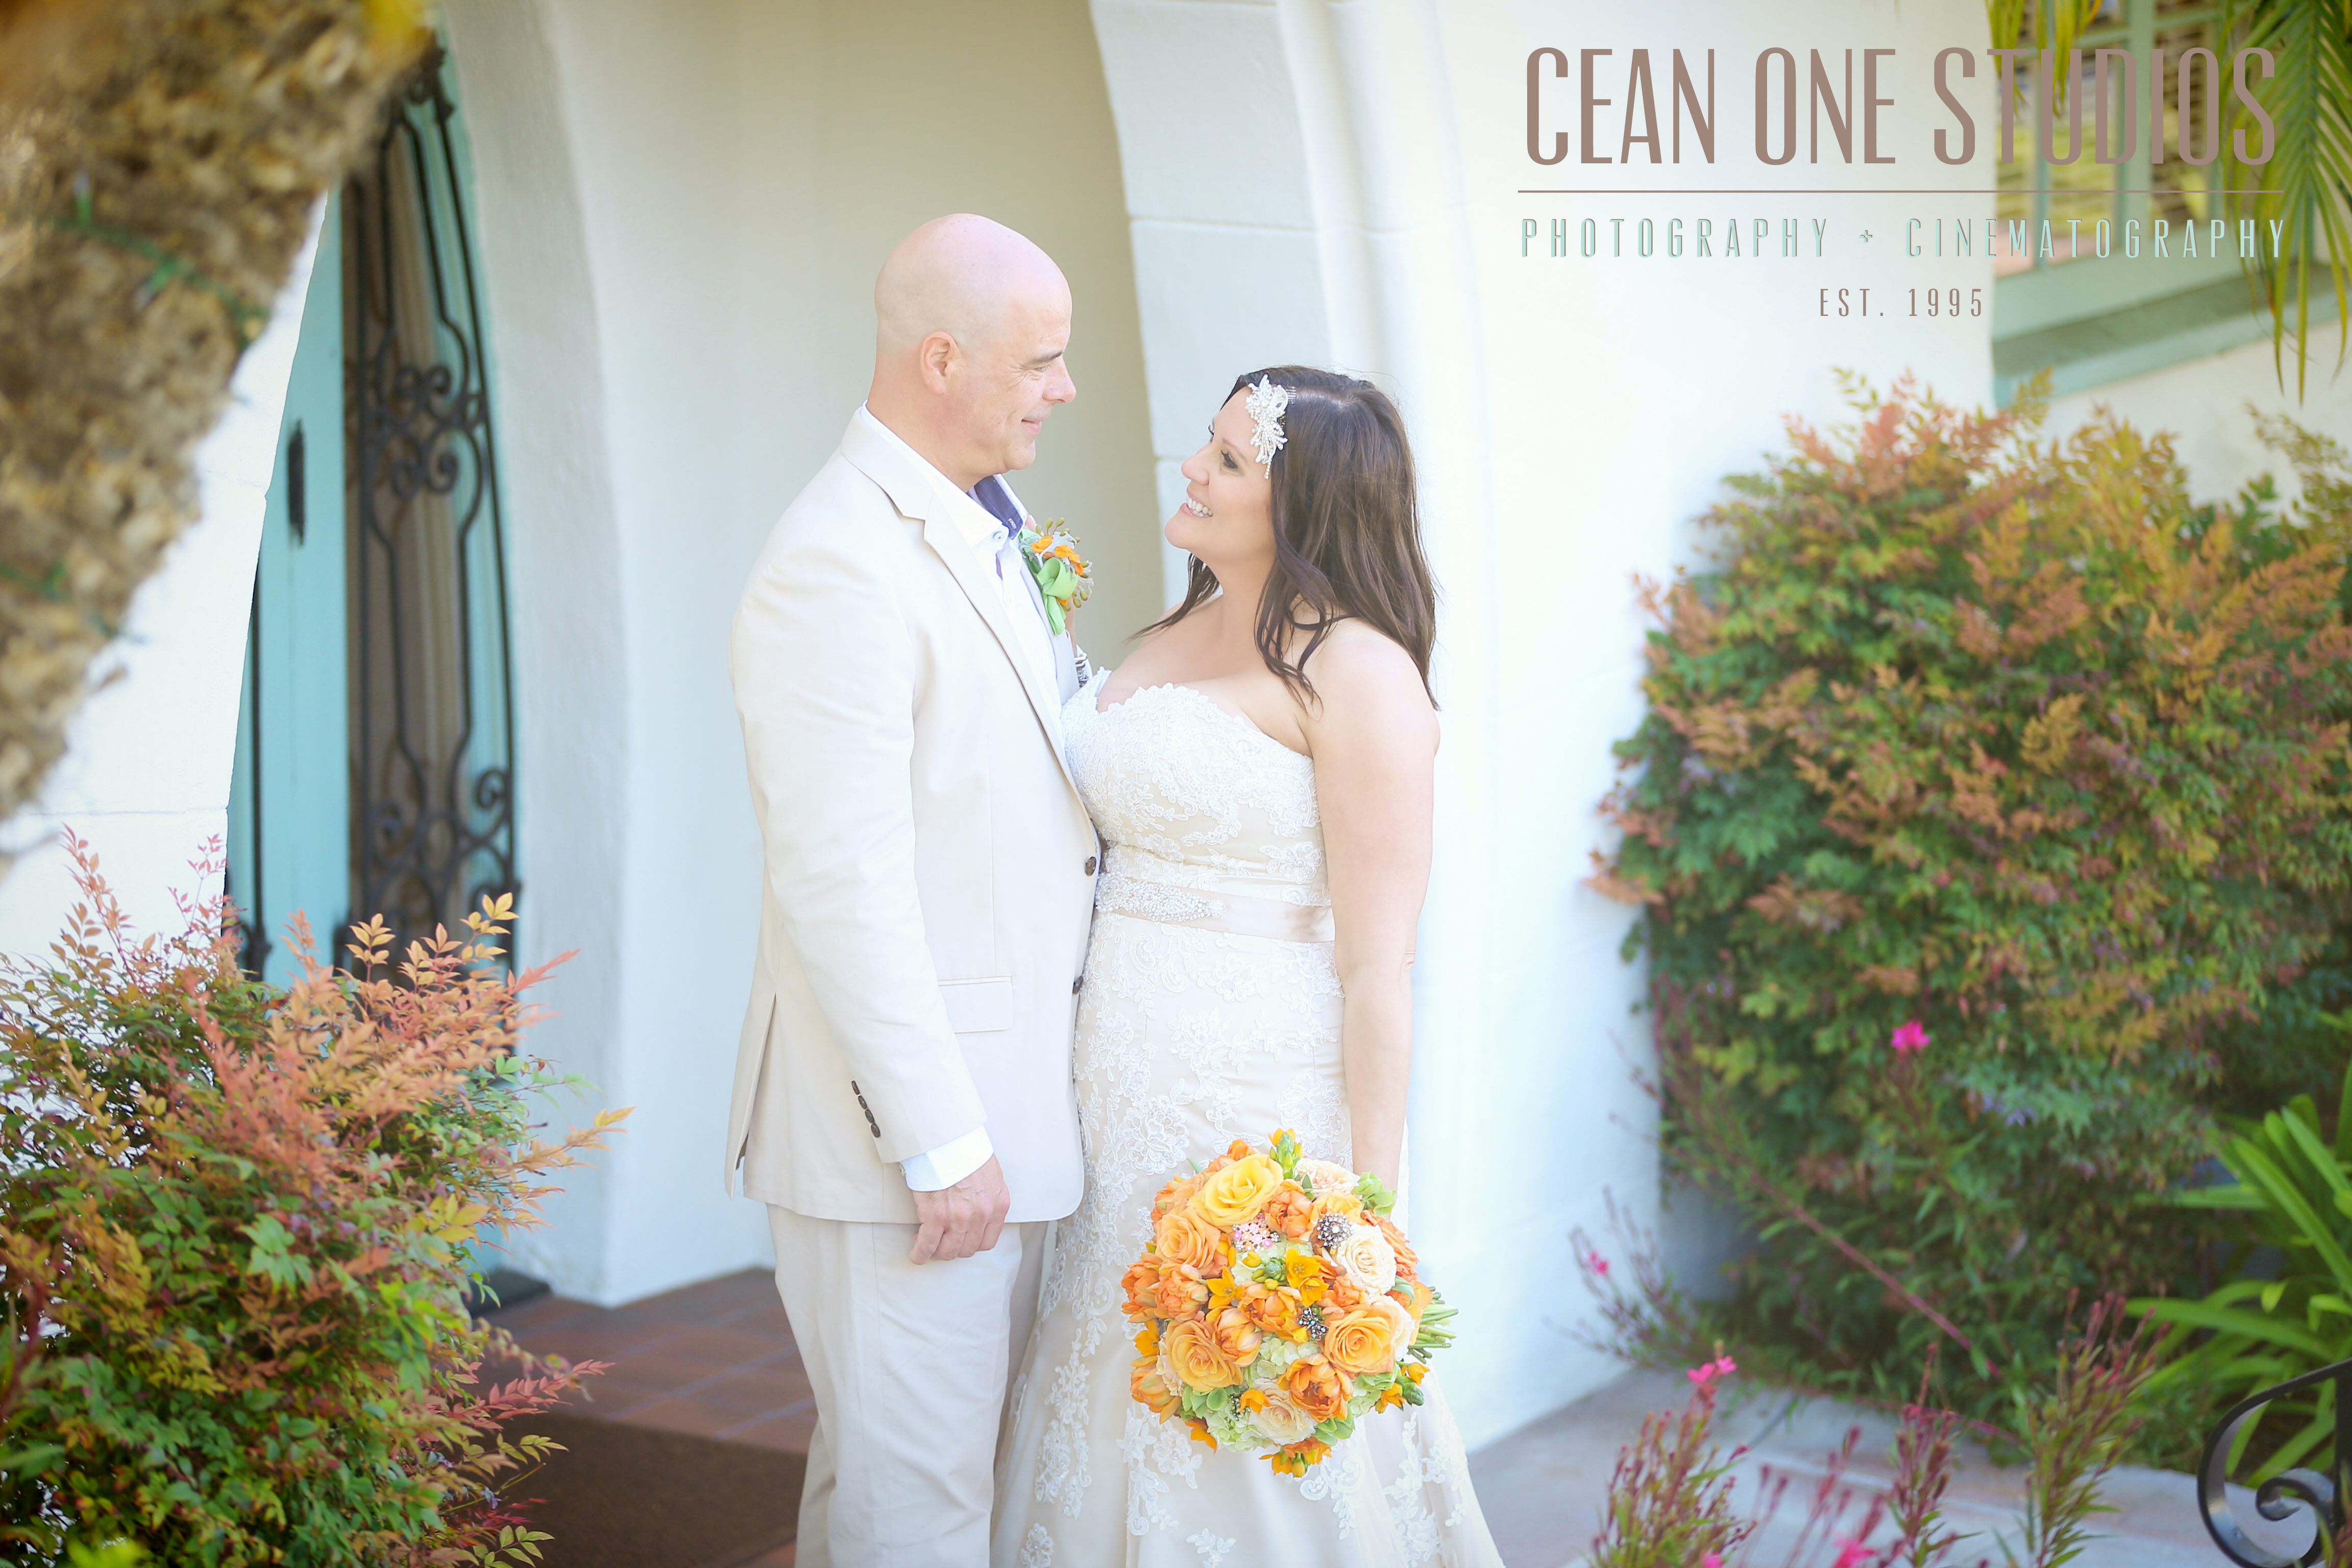 Bride with orange bouquet smiling at groom | Cean One Studios | San Diego Wedding Photographer